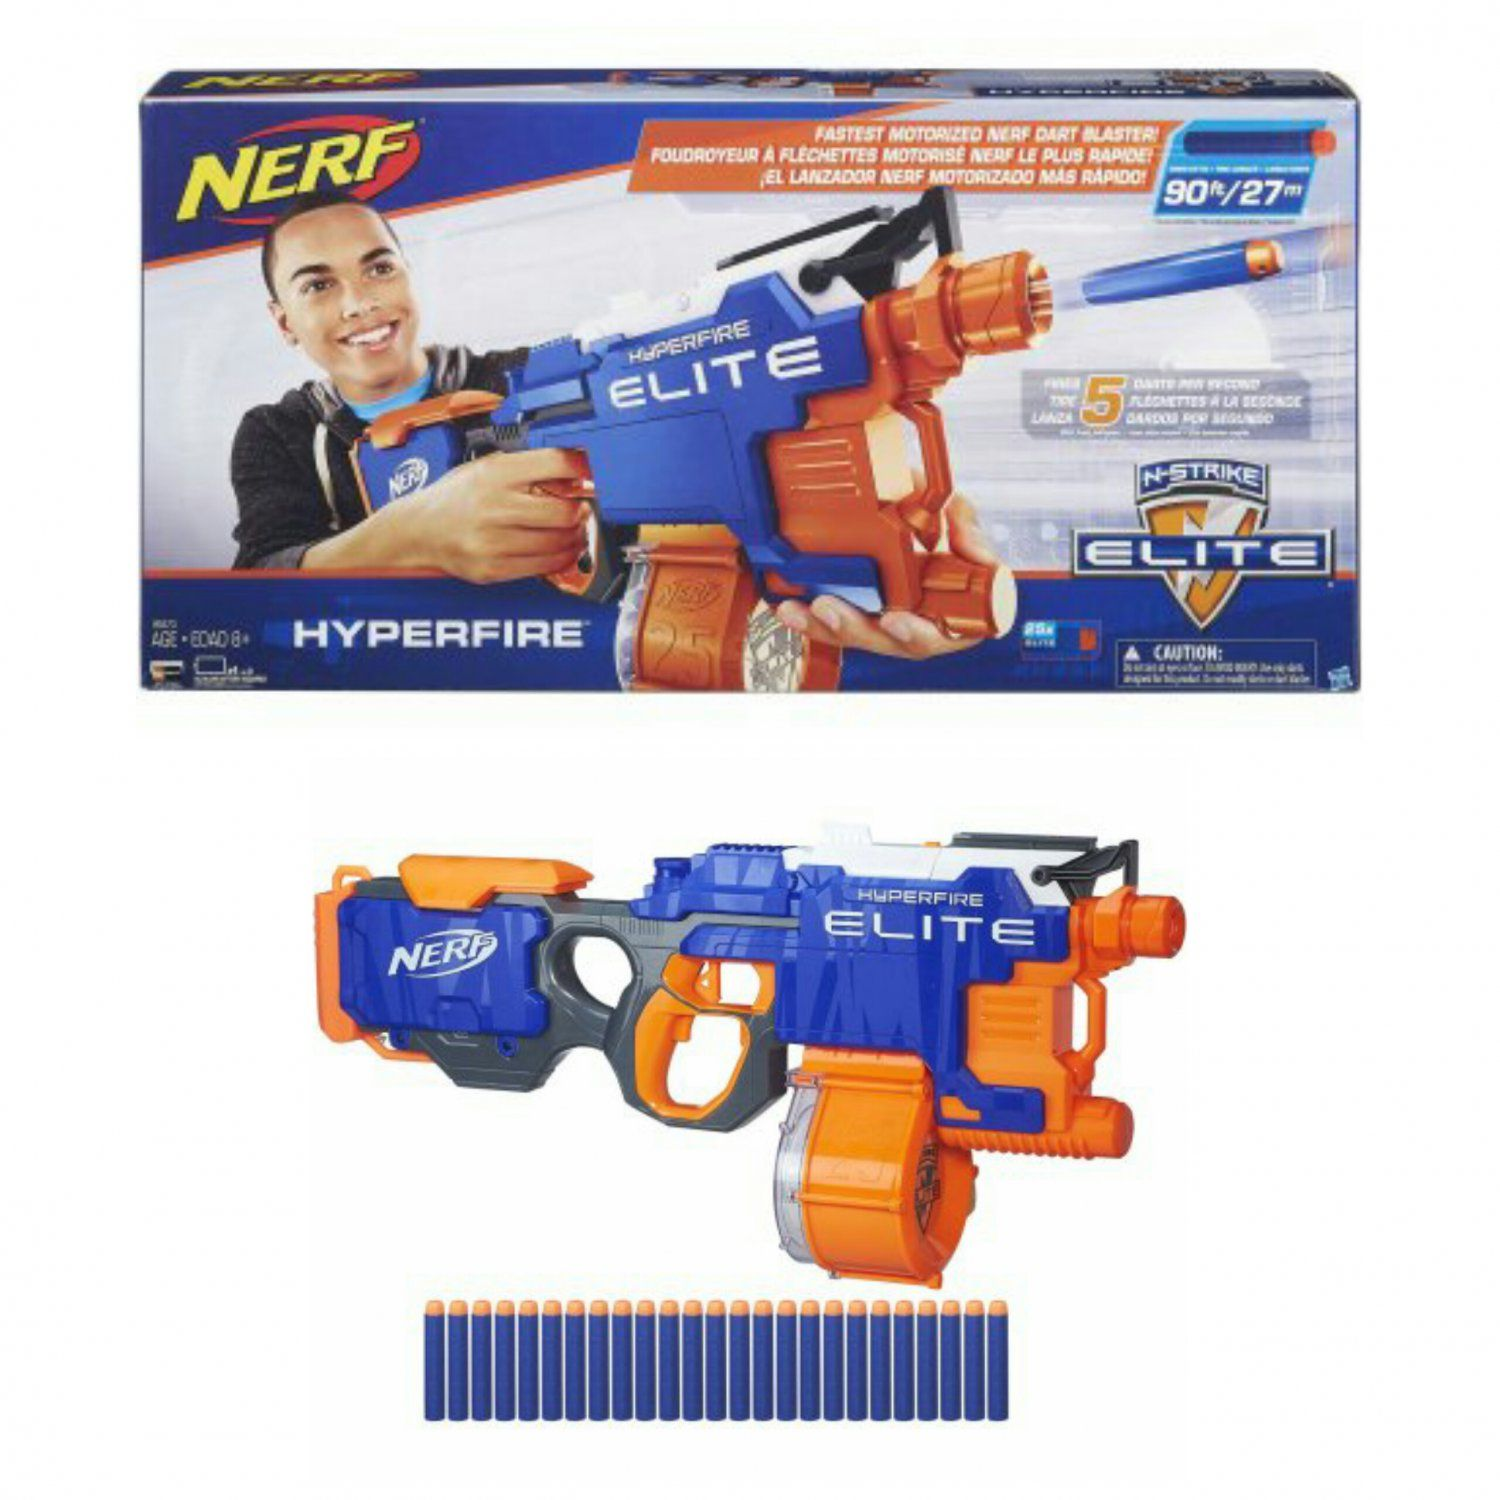 Nerf N Strike Elite HyperFire Motorized Gun Dart Blaster by Hasbro B5573 Walmart Exclusive